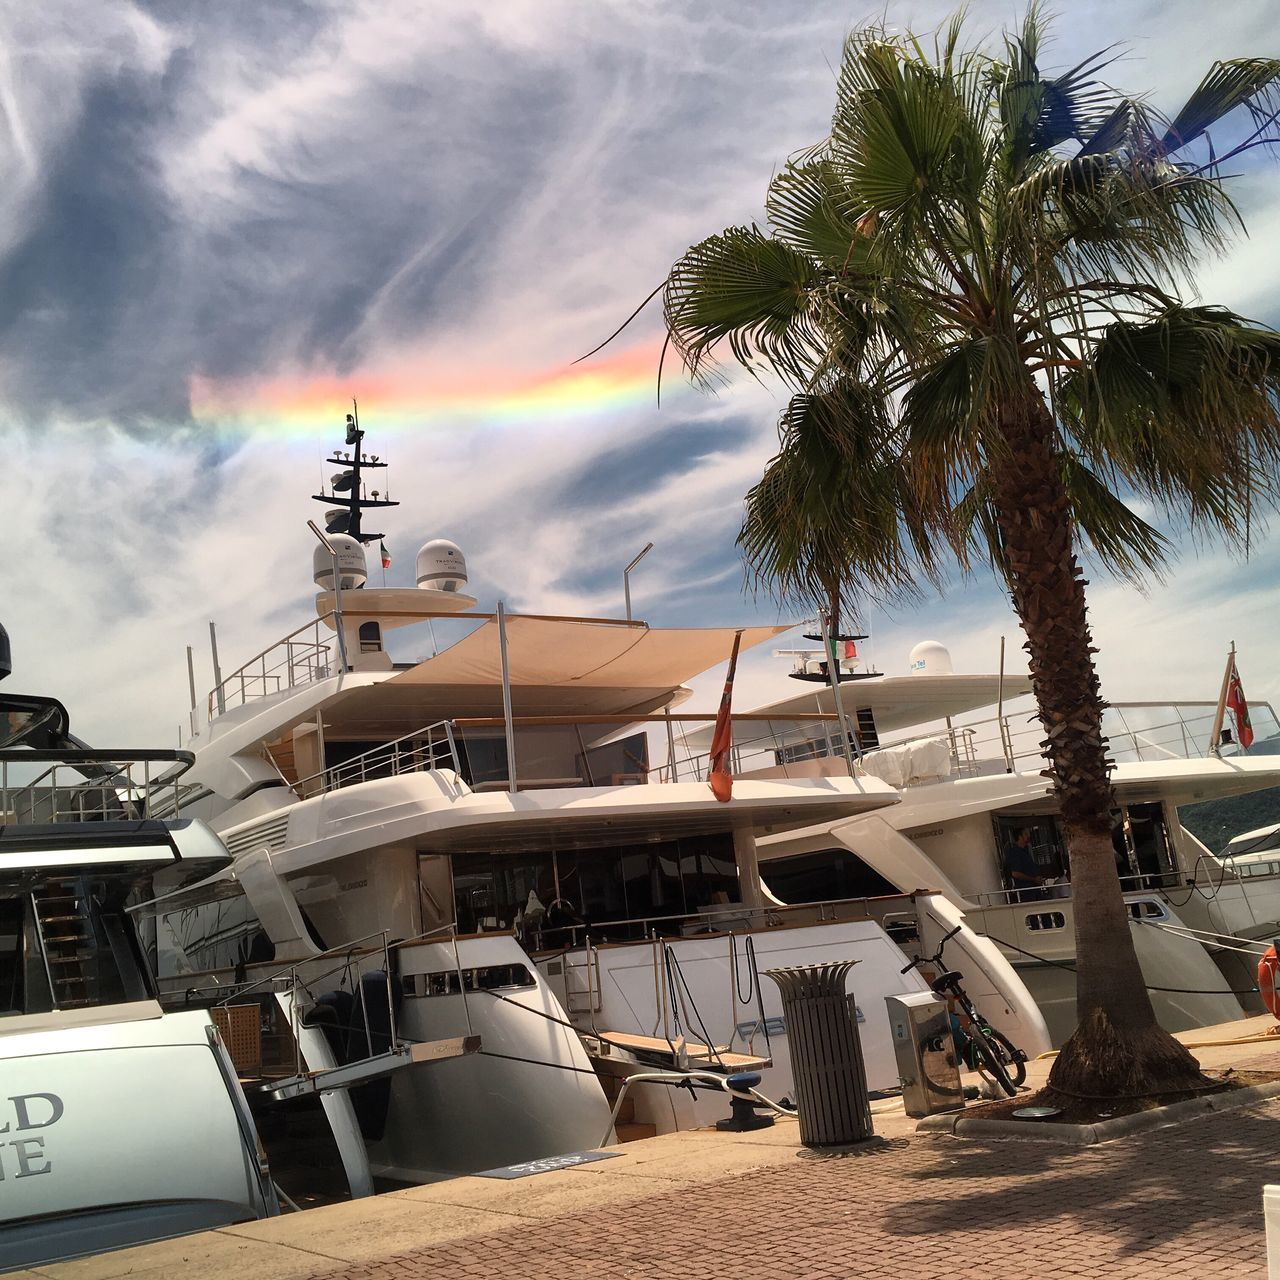 palm tree, tropical climate, sky, tree, water, transportation, nautical vessel, mode of transportation, cloud - sky, nature, sea, plant, moored, outdoors, no people, architecture, built structure, day, travel, sailboat, coconut palm tree, yacht